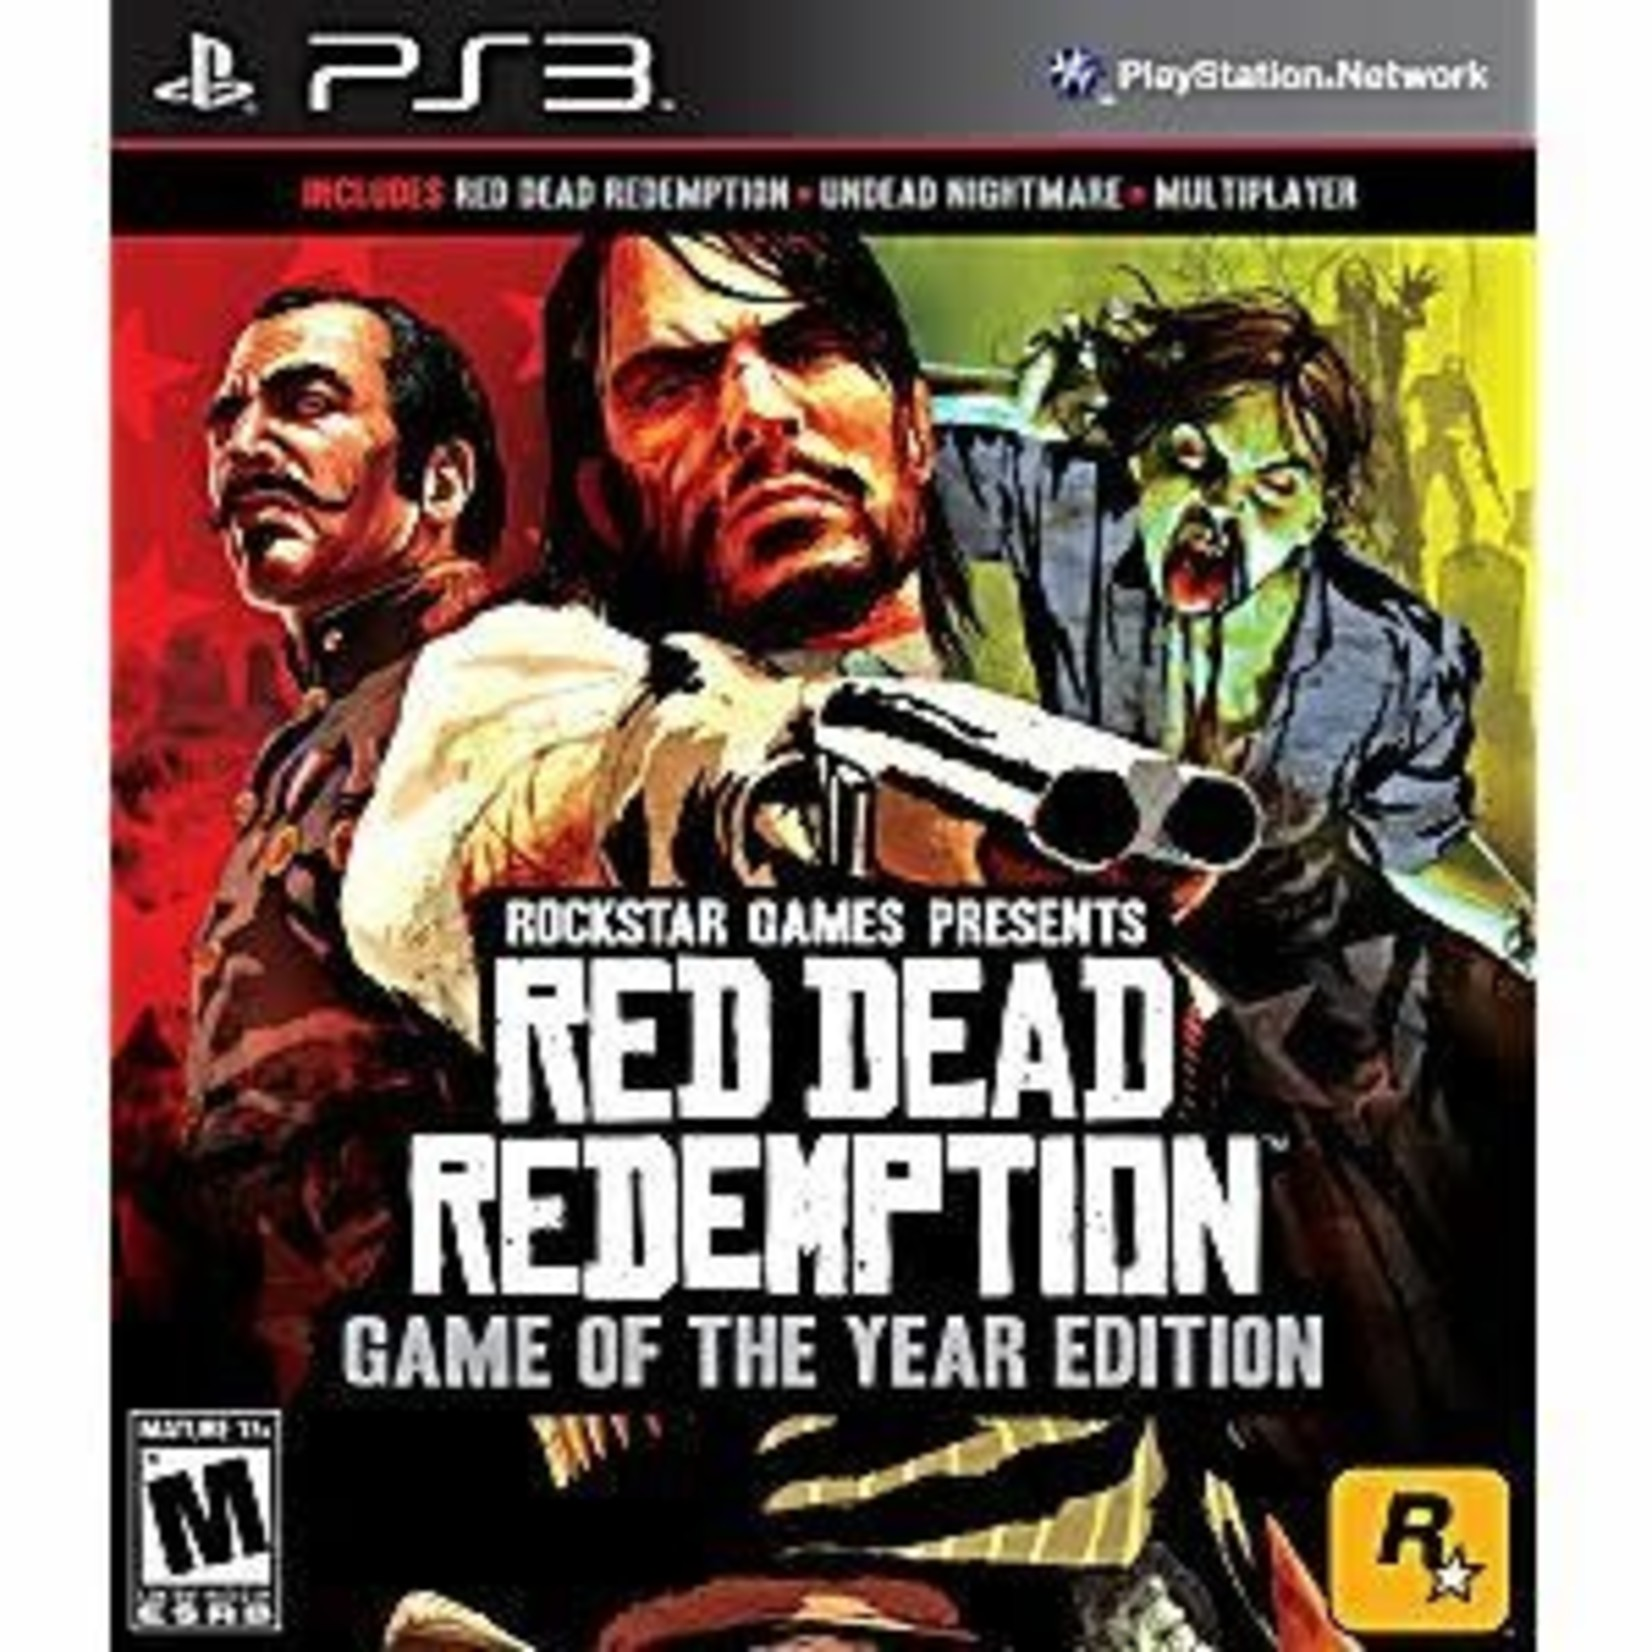 PS3-Red Dead Redemption Game of the Year Edition